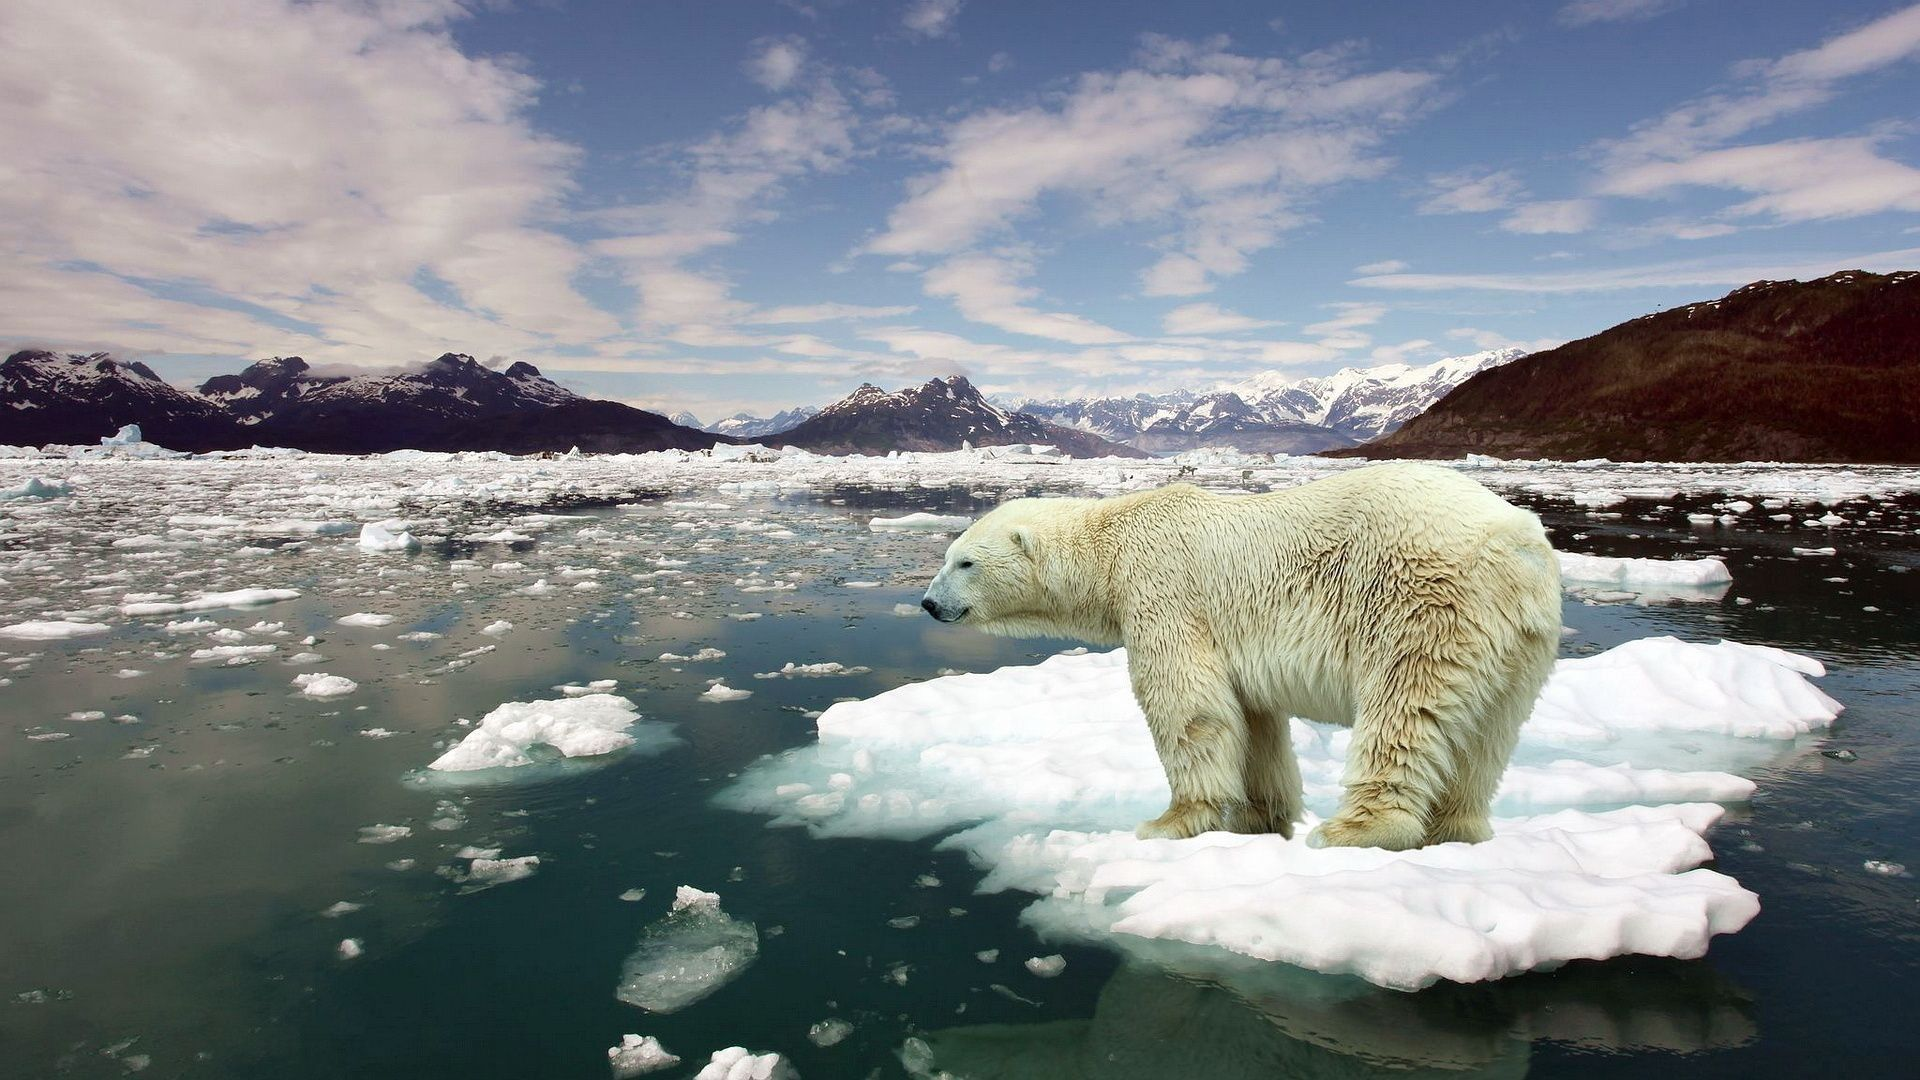 This image shows a polar bear standing on a small floating ice